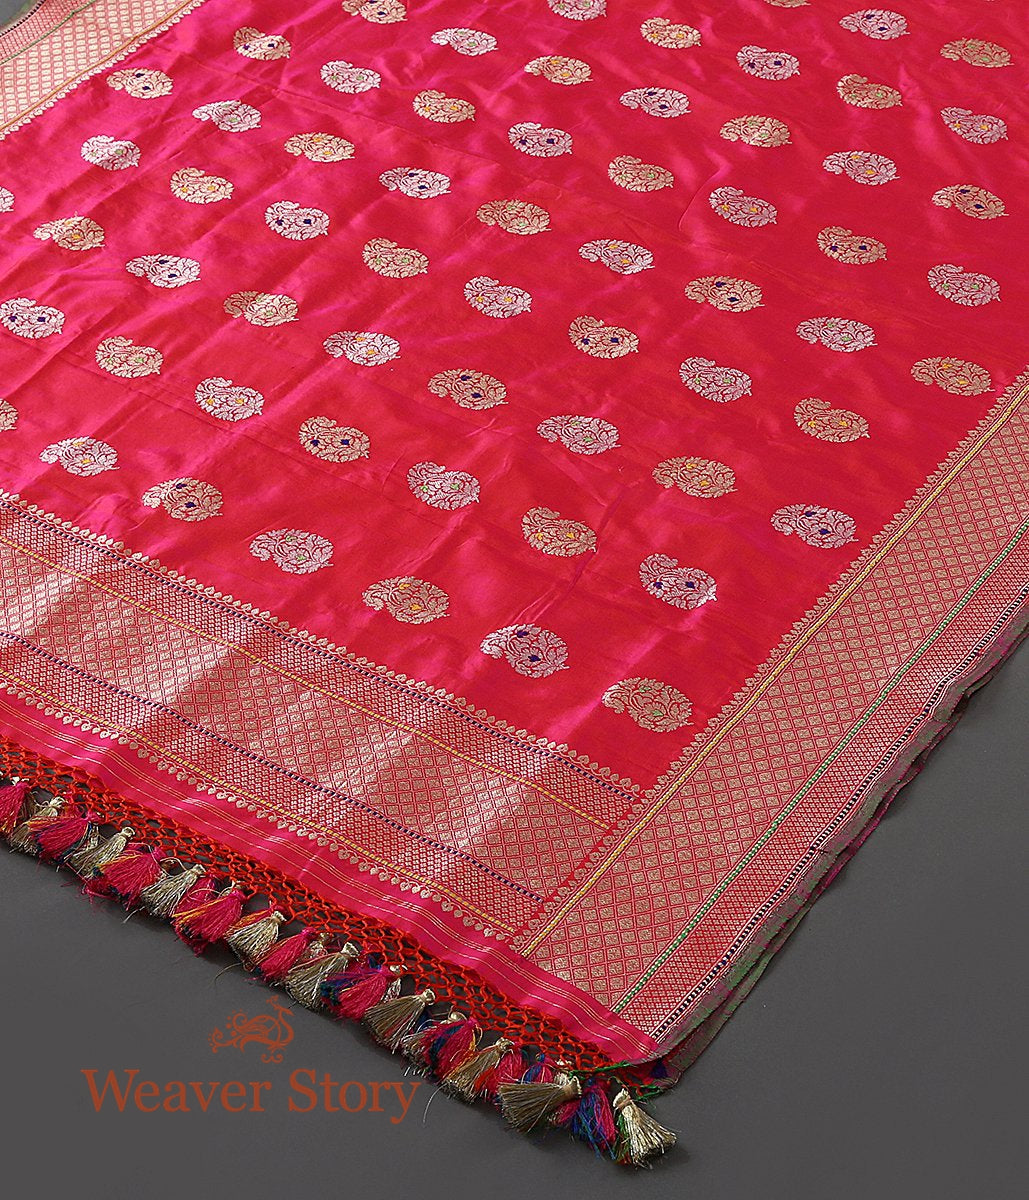 Handwoven Hot Pink Pure Katan Silk Dupatta with Sona Rupa Paisley Motifs with Meenakari